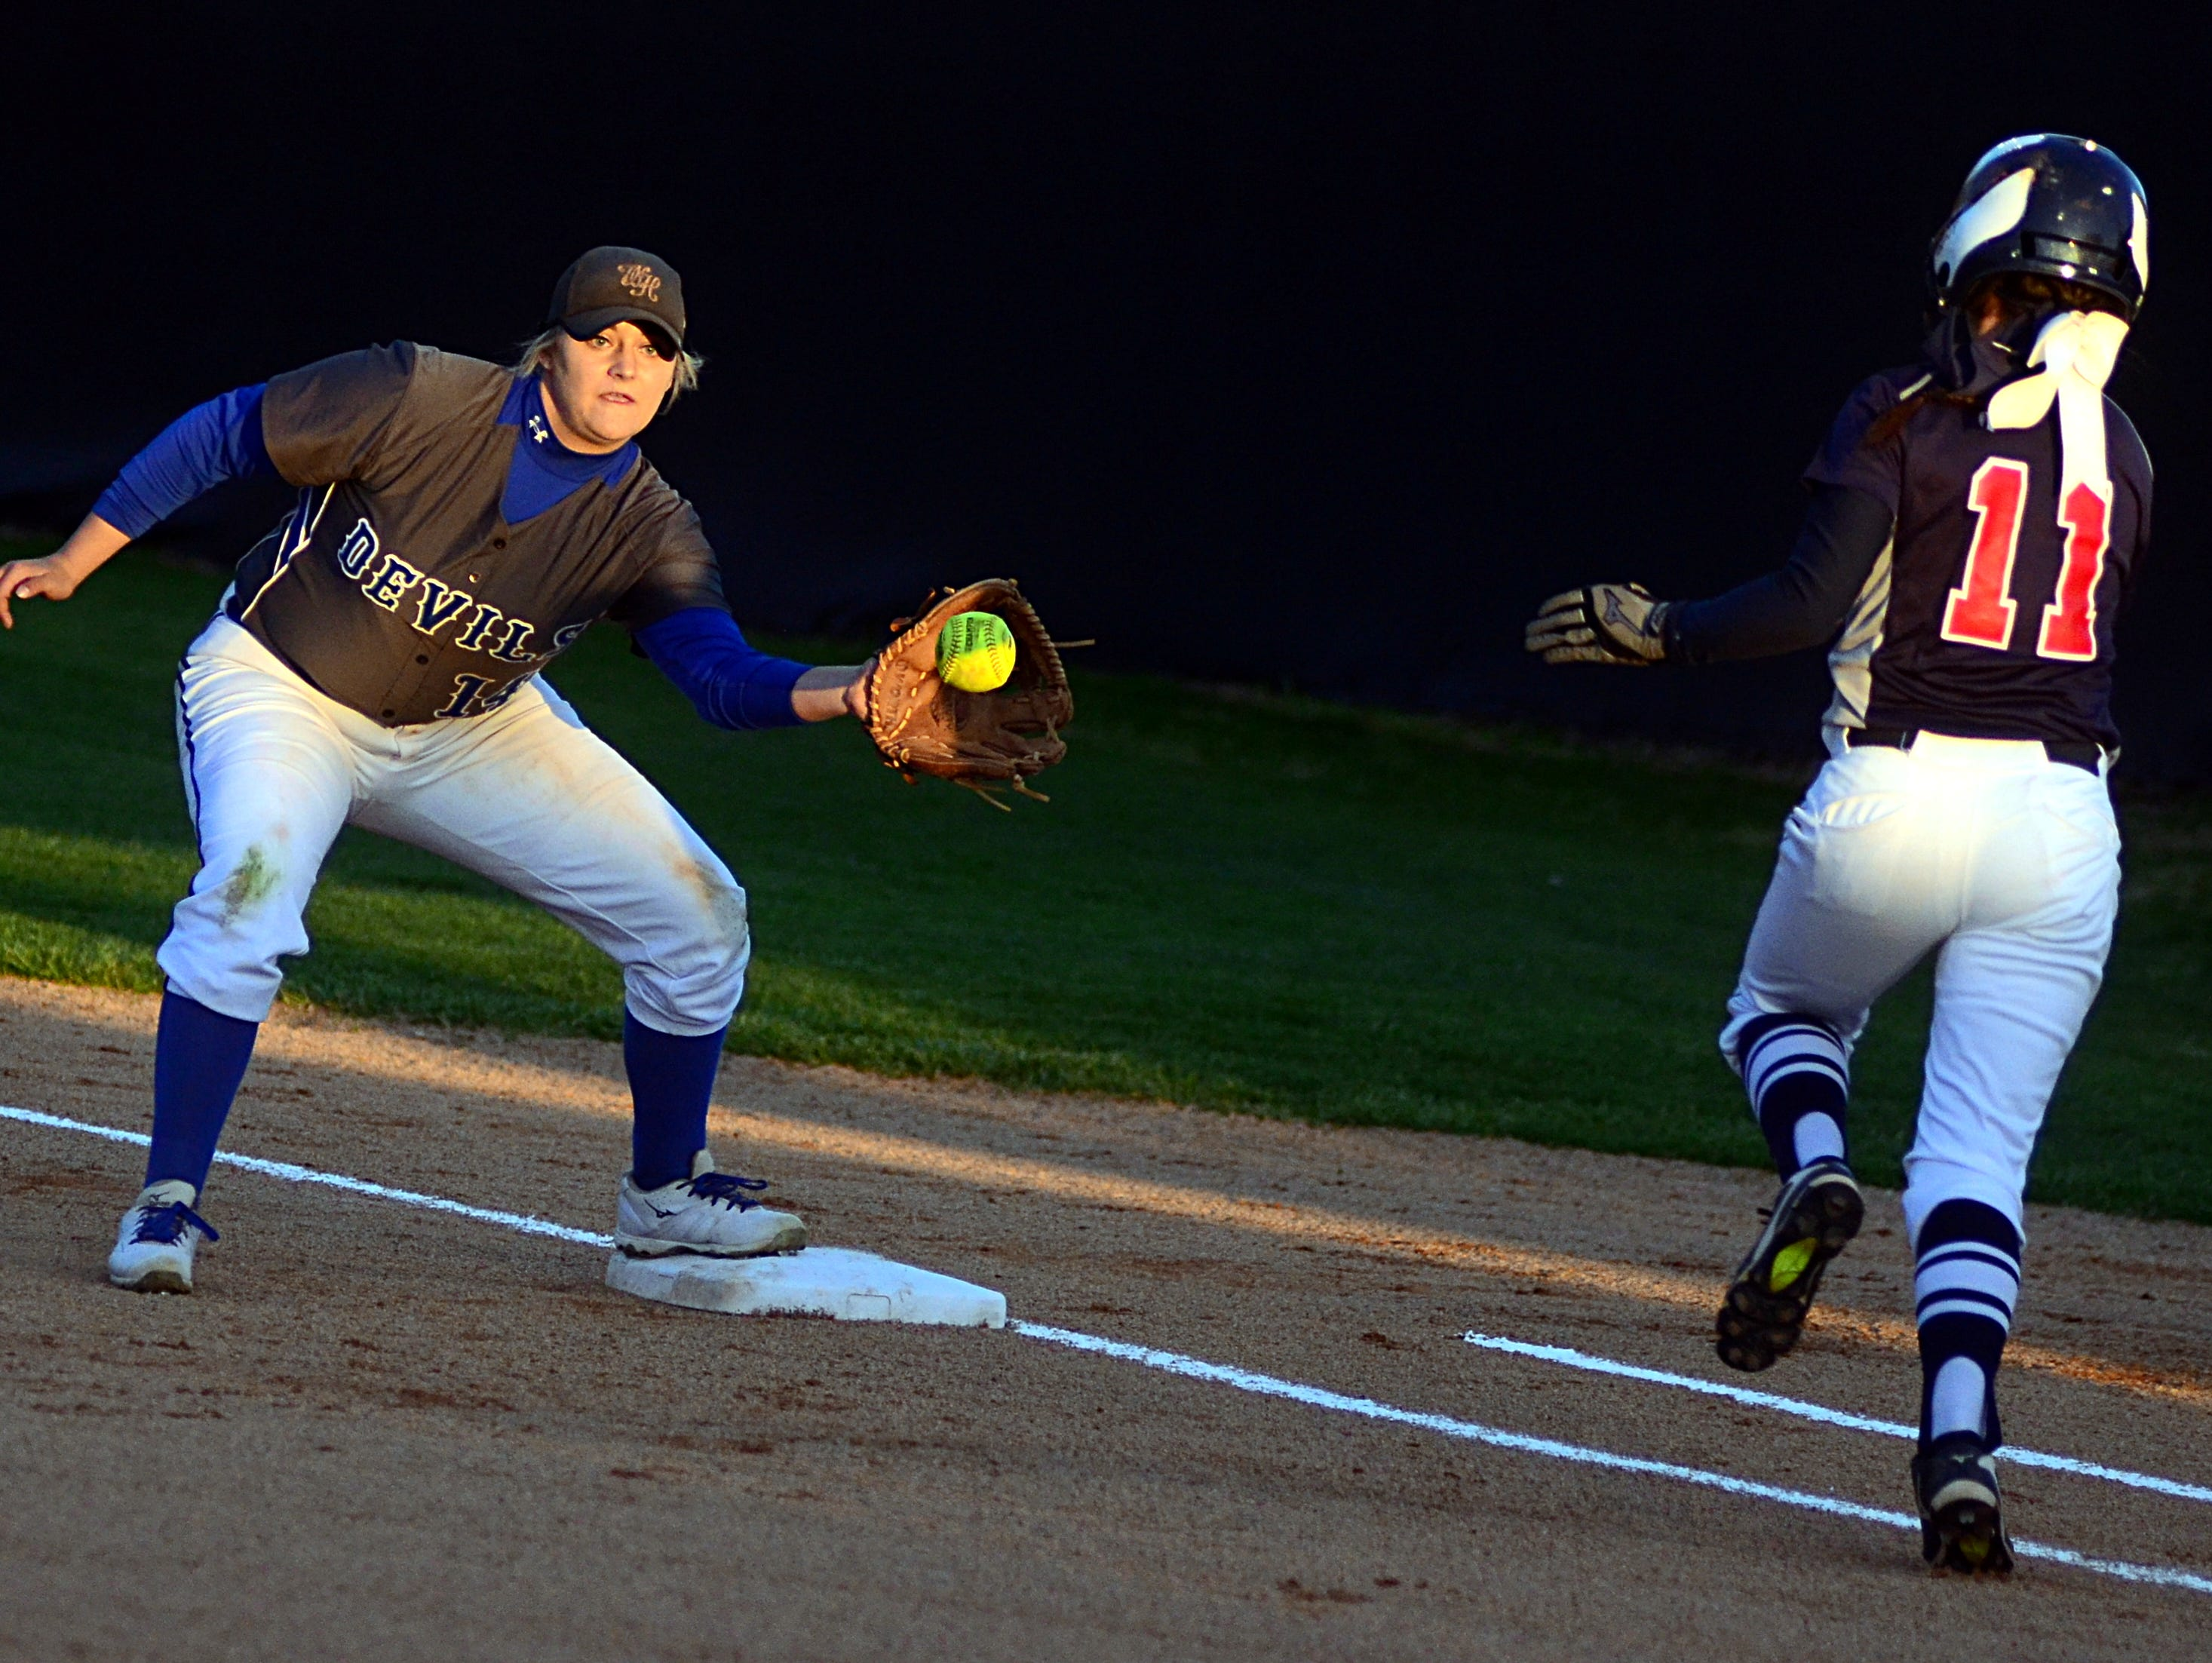 White House High junior Katy Gut receives a throw at first base as White House Heritage's Riley Hallum runs down the first-base line during first-inning action.